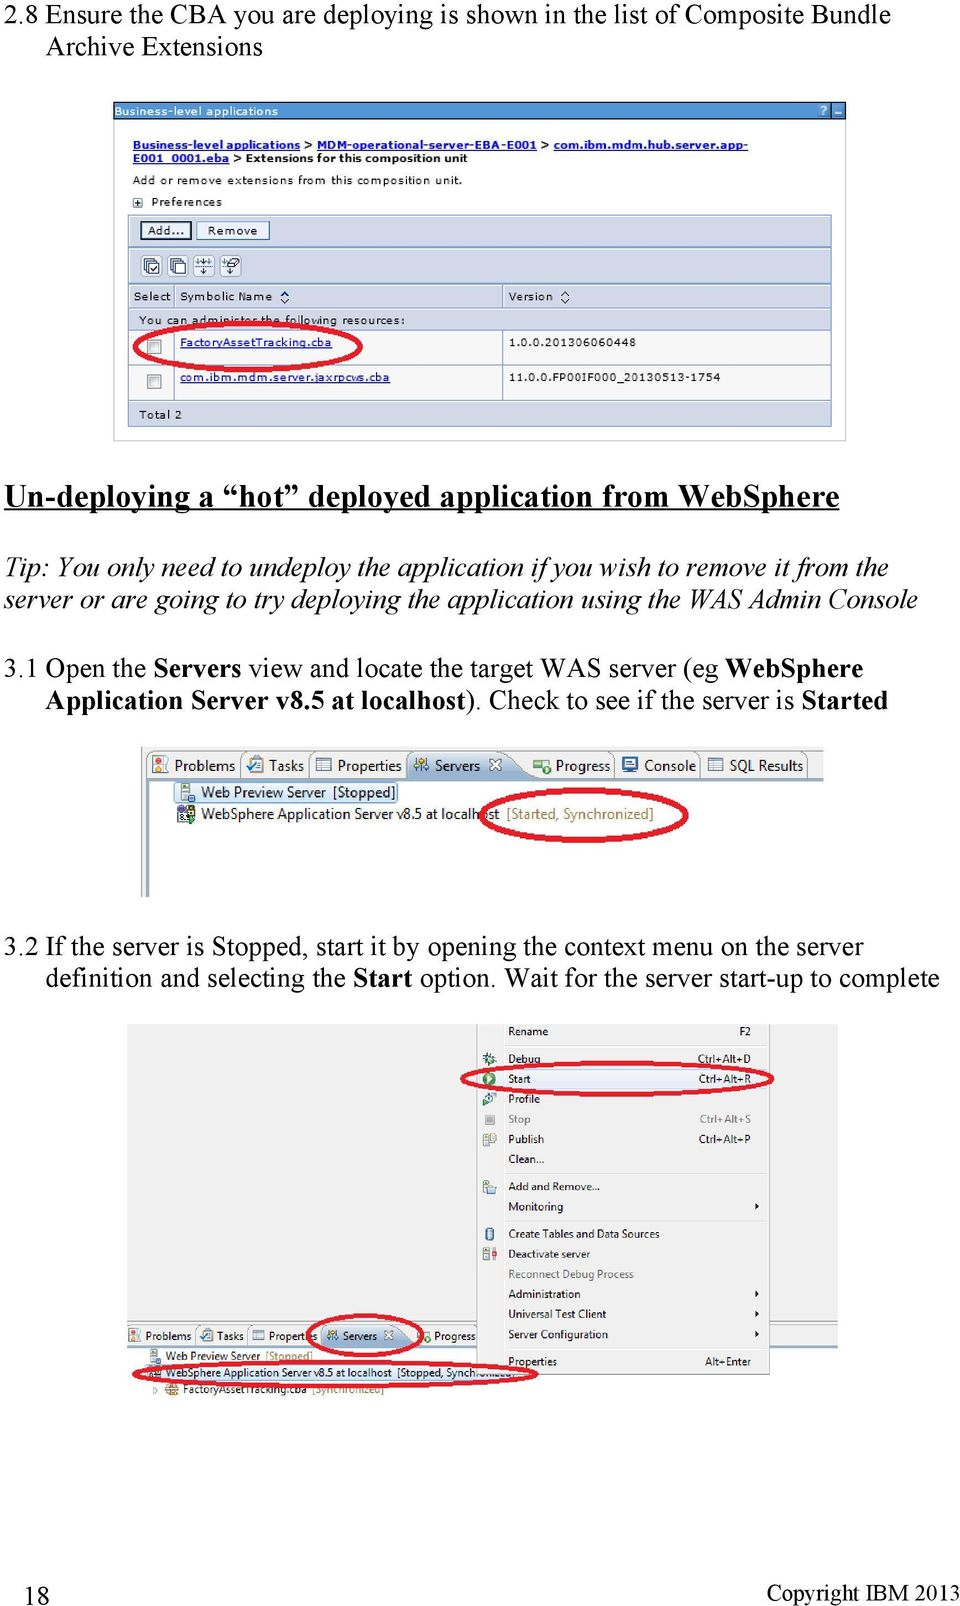 3.1 Open the Servers view and locate the target WAS server (eg WebSphere Application Server v8.5 at localhost). Check to see if the server is Started 3.